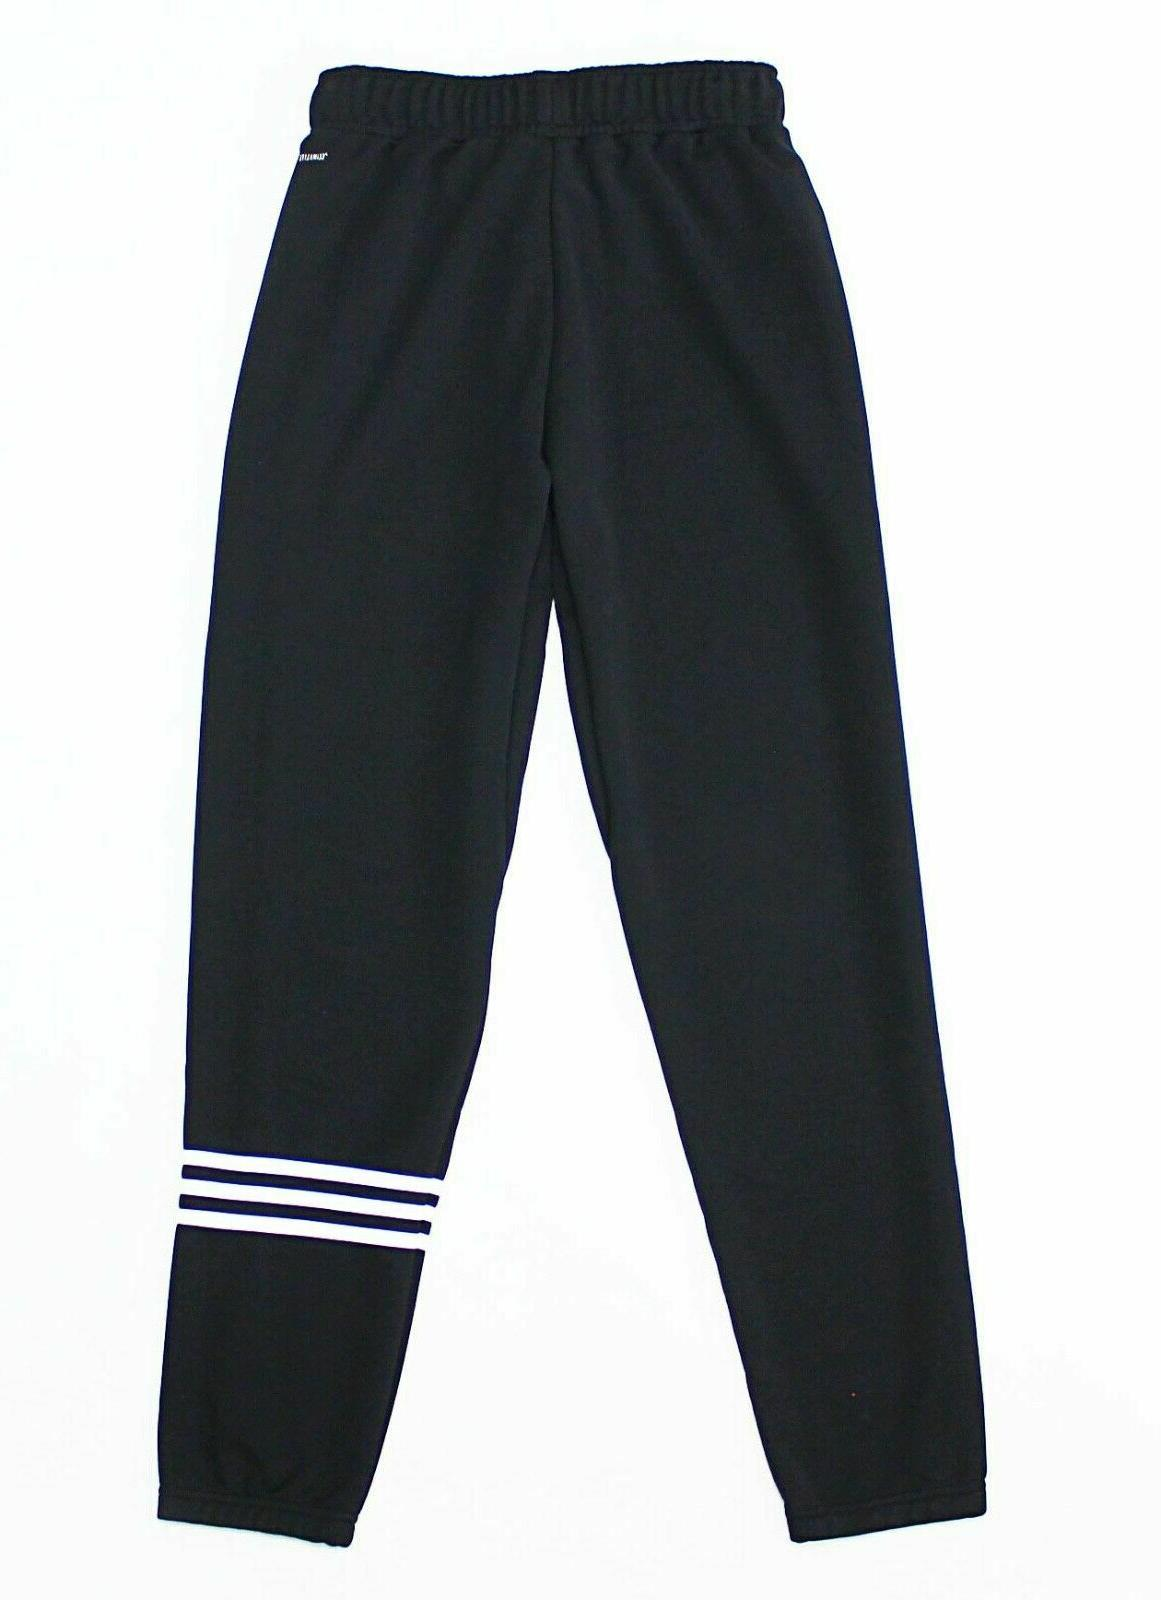 NWT ADIDAS Motion Zipper-Pocket Sweatpants Joggers gym